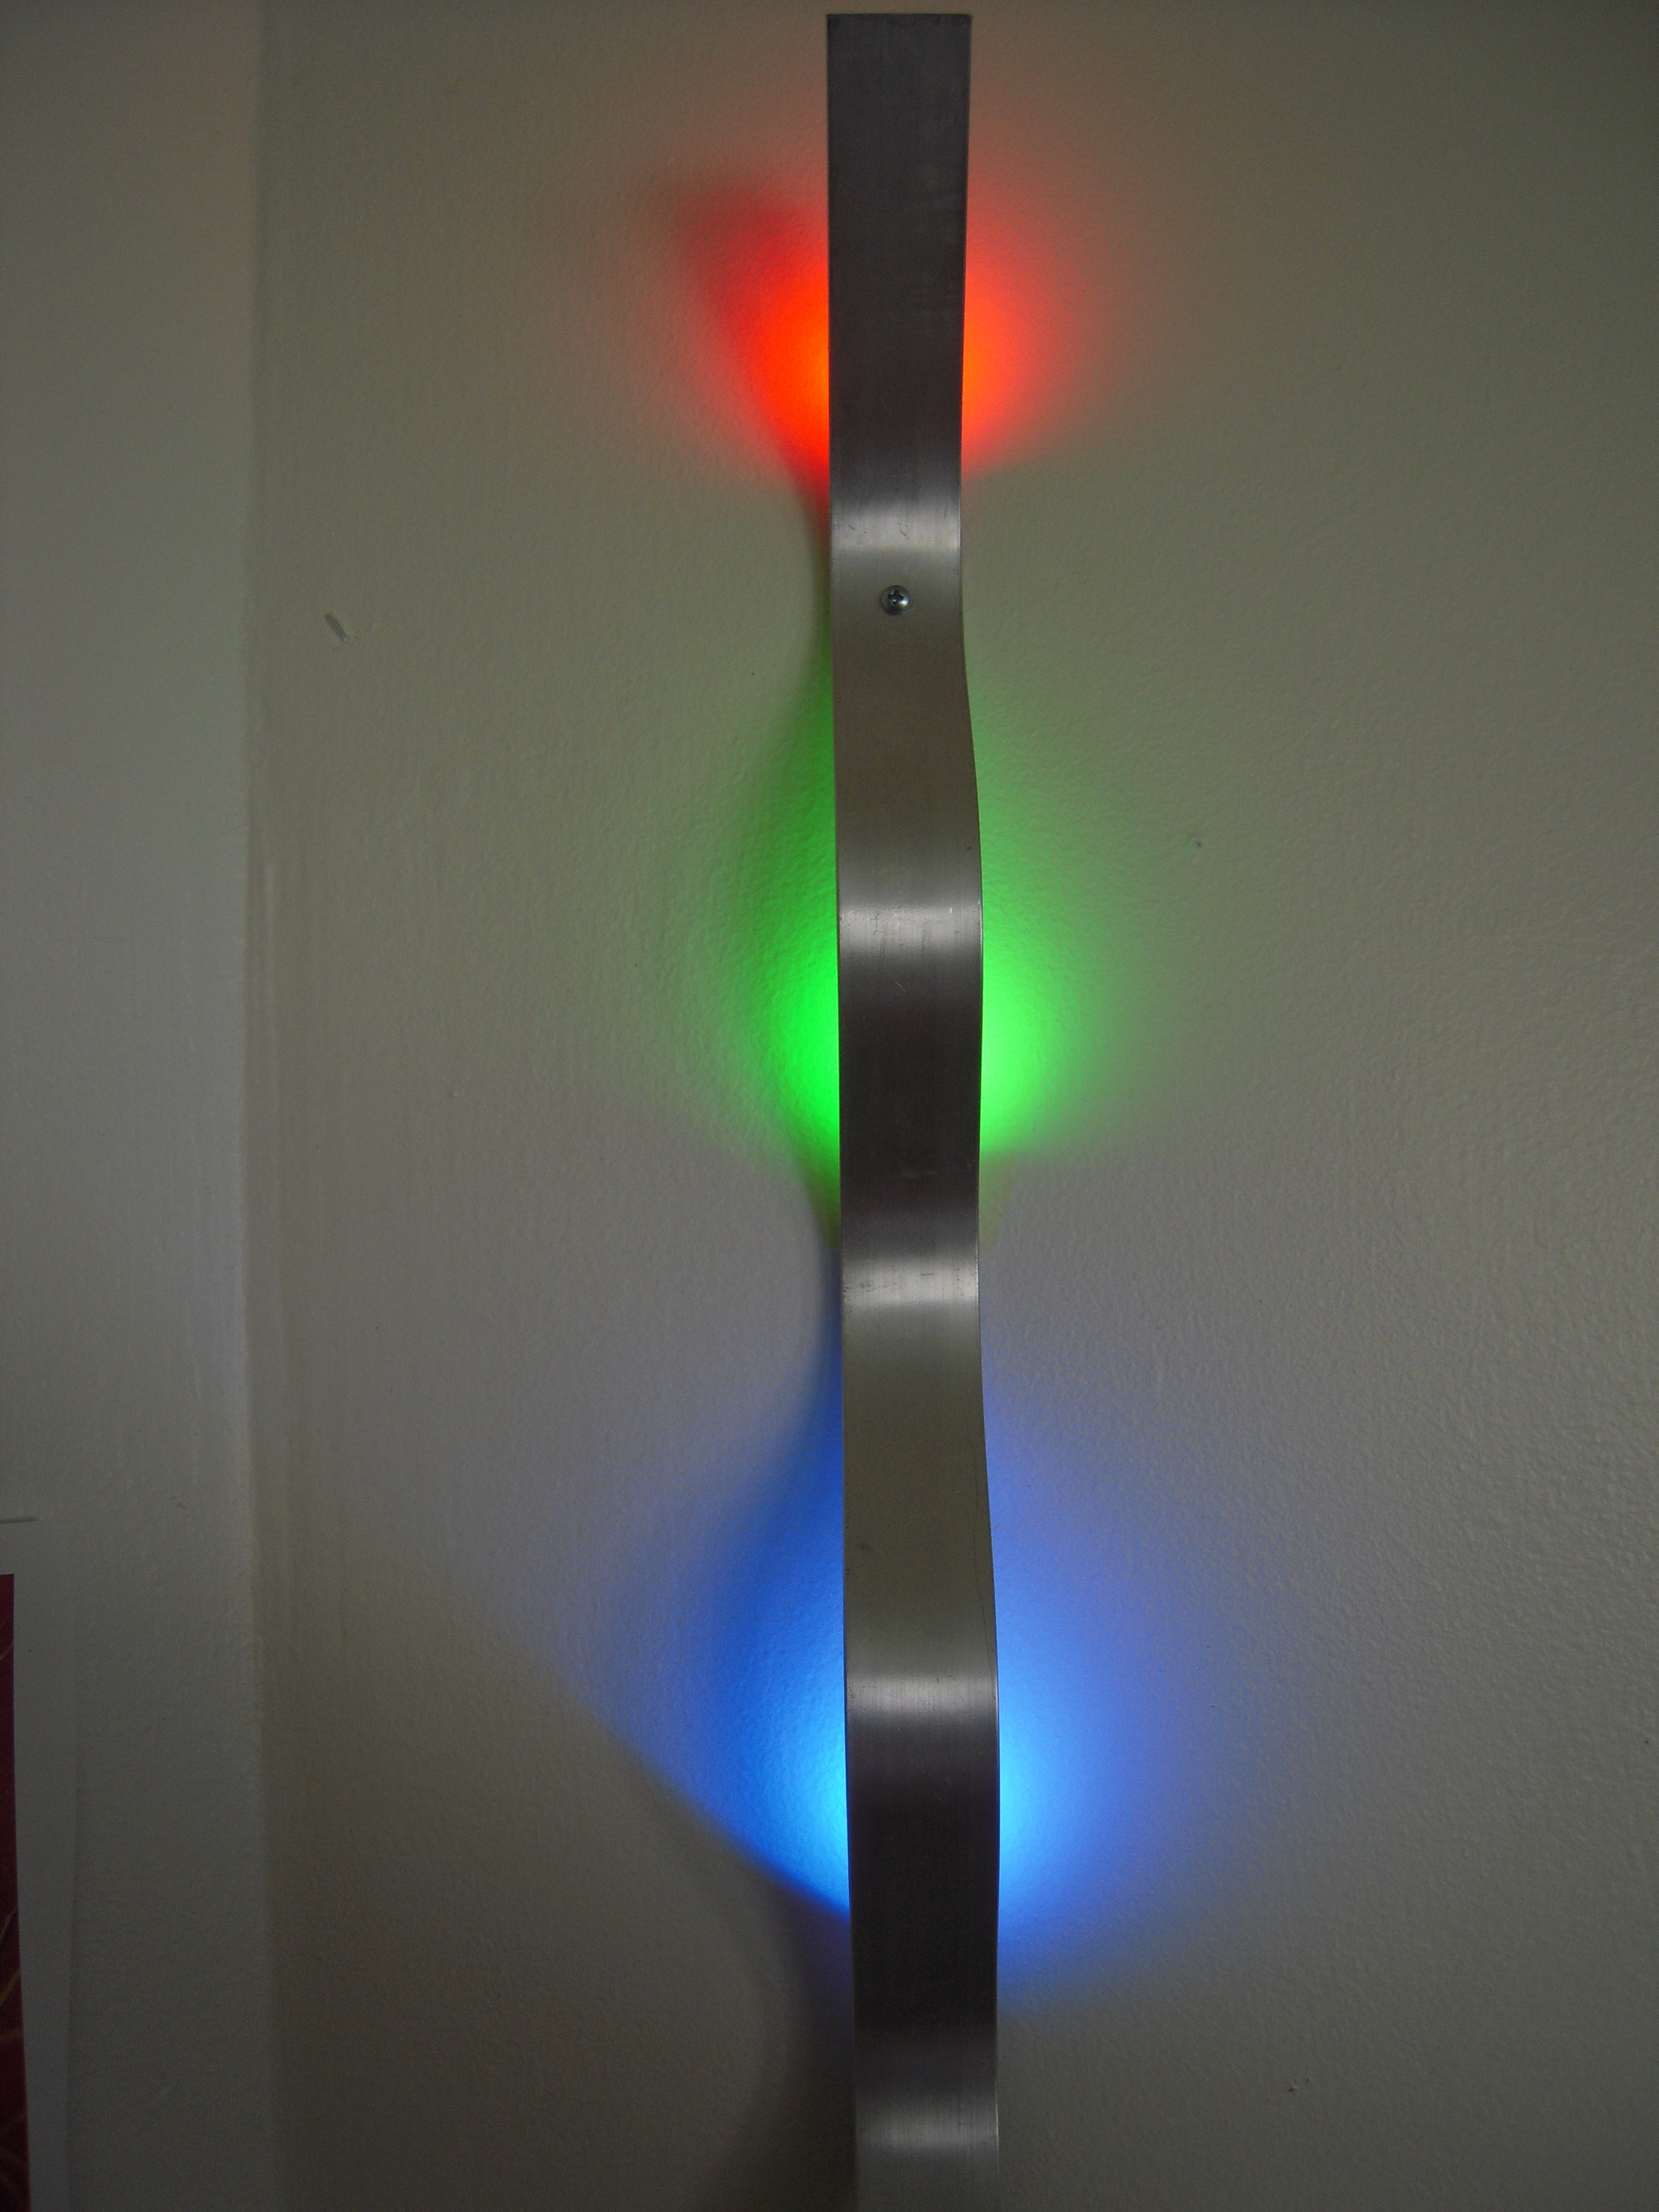 Make Colorful Light Art With Led Lighting And Your Existing Wall In Well Known Wall Light Box Art (View 6 of 15)